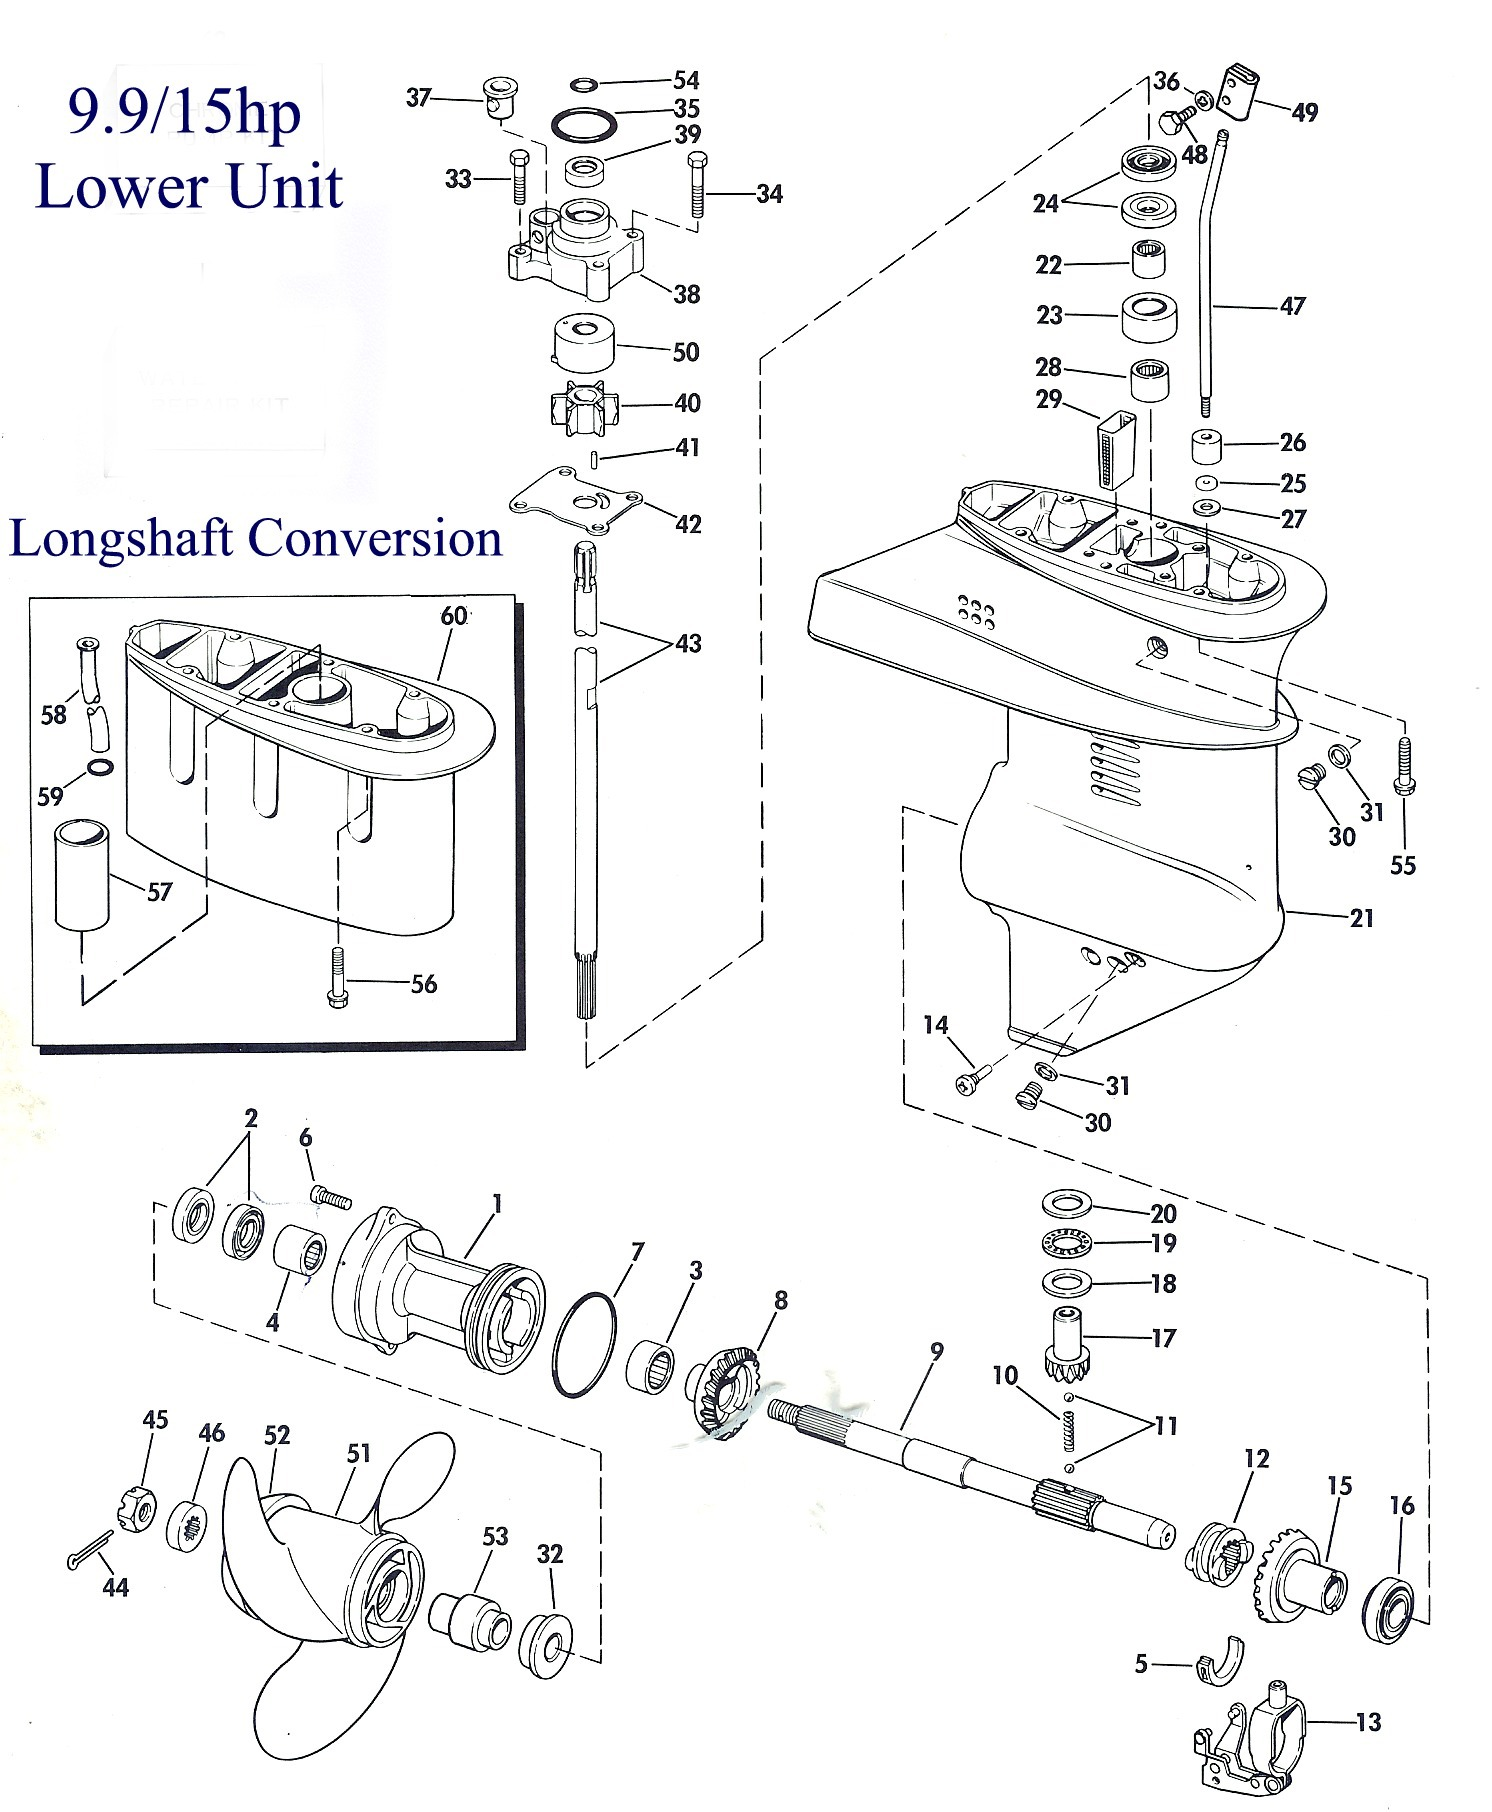 Lower unit on 4 stroke yamaha 115 outboard wiring diagram